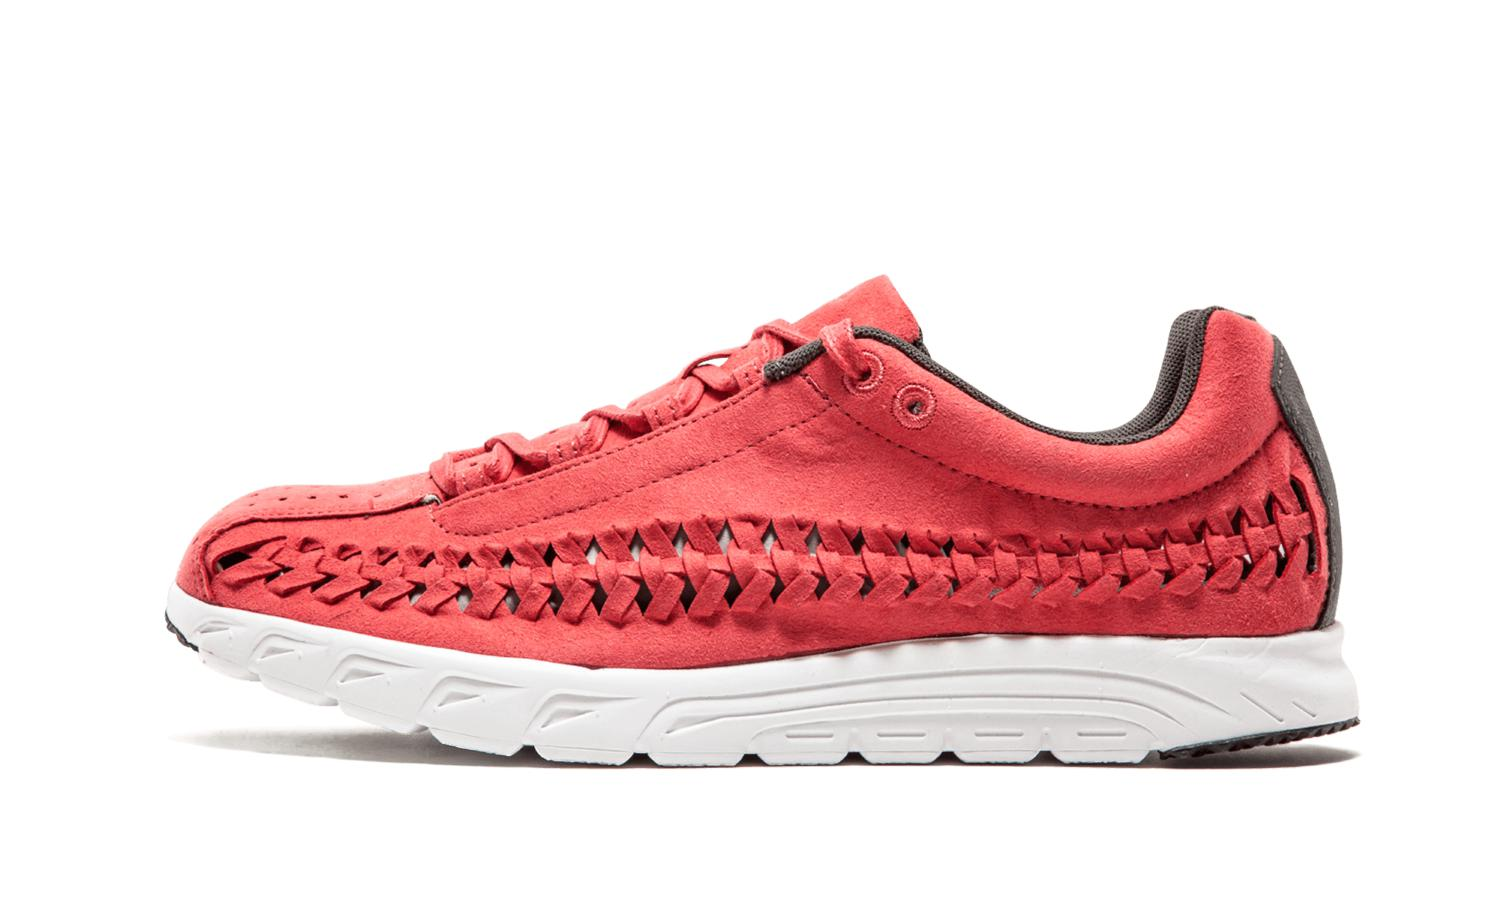 Nike. Men's Red Mayfly Woven - 833132 600